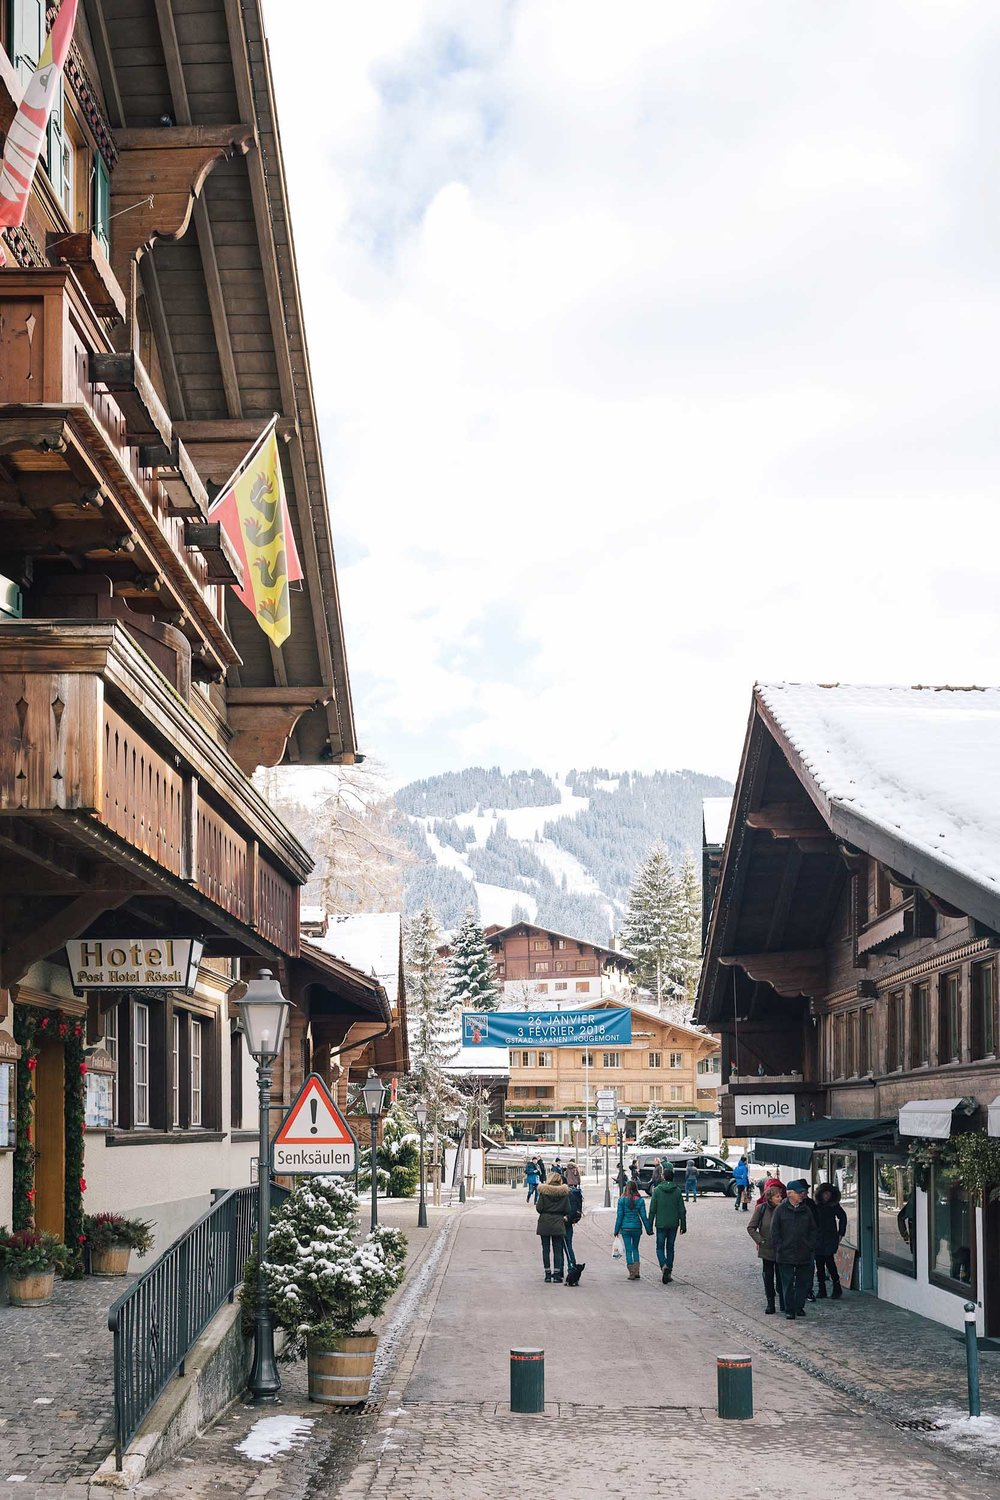 Views from the center of town in Gstaad, Switzerland